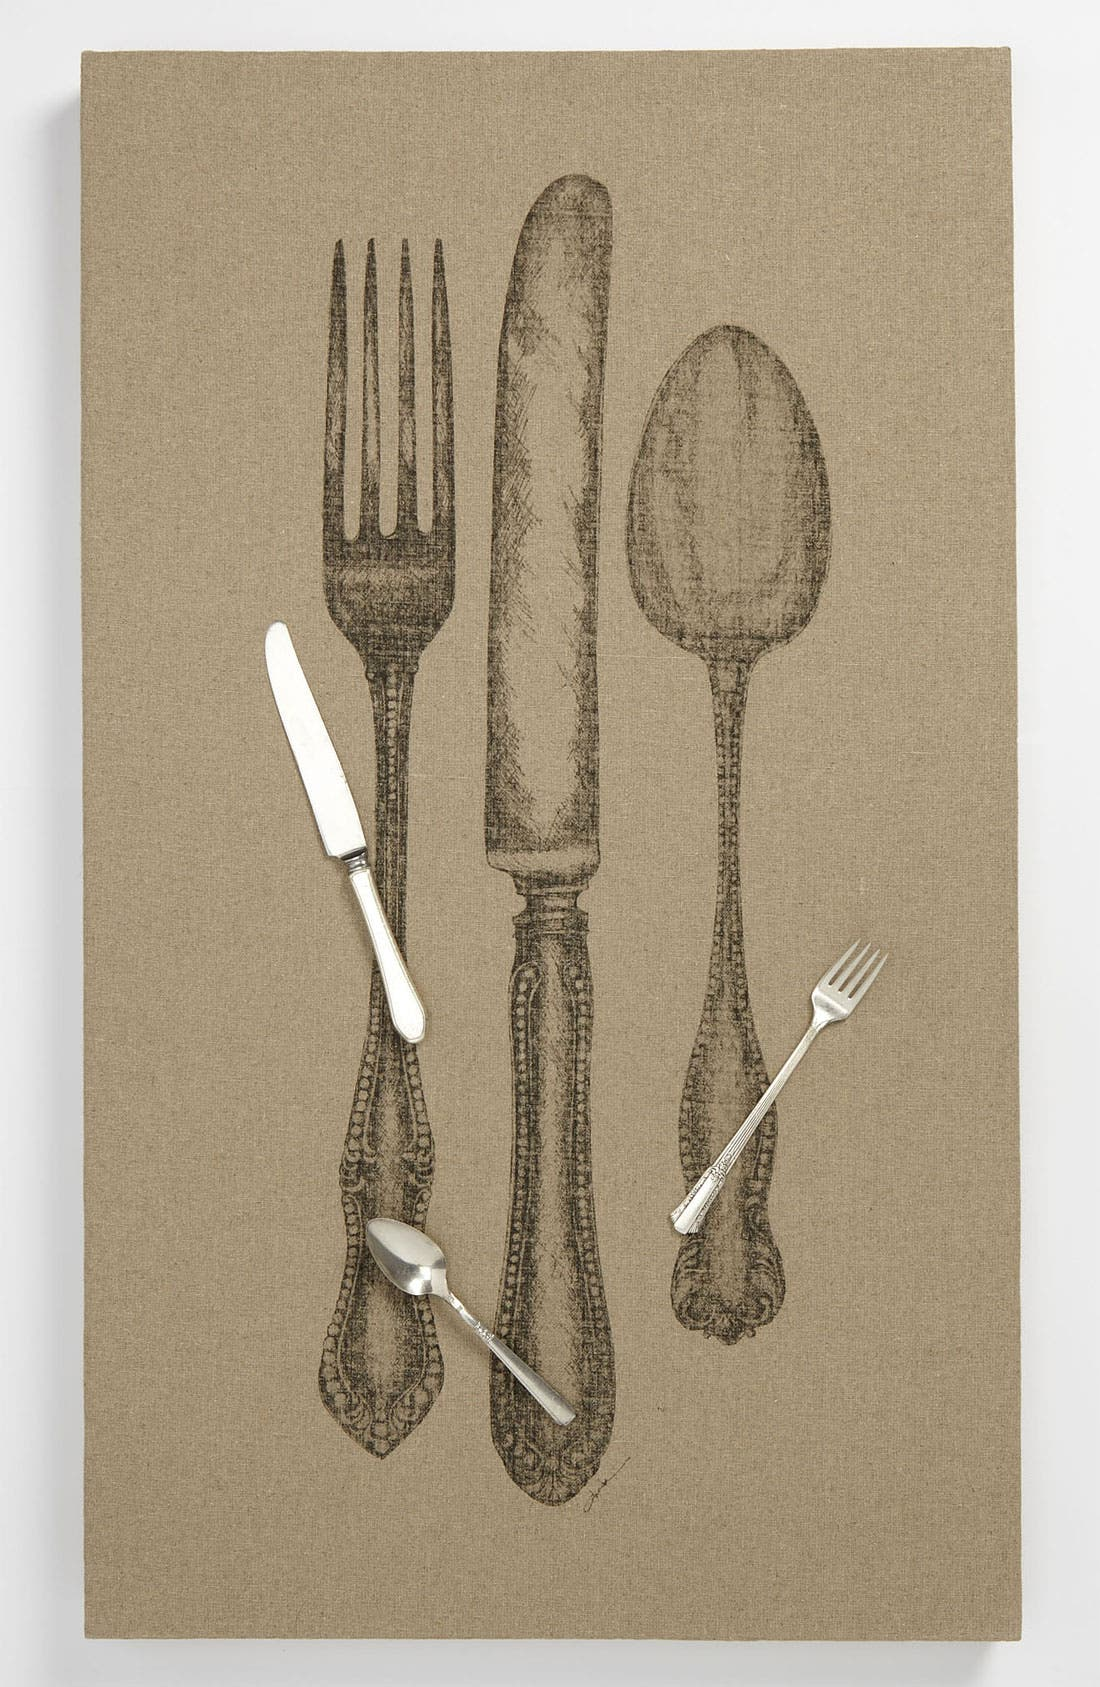 Alternate Image 1 Selected - Kitchen Papers by Cake 'Grand Trio' Magnetic Board